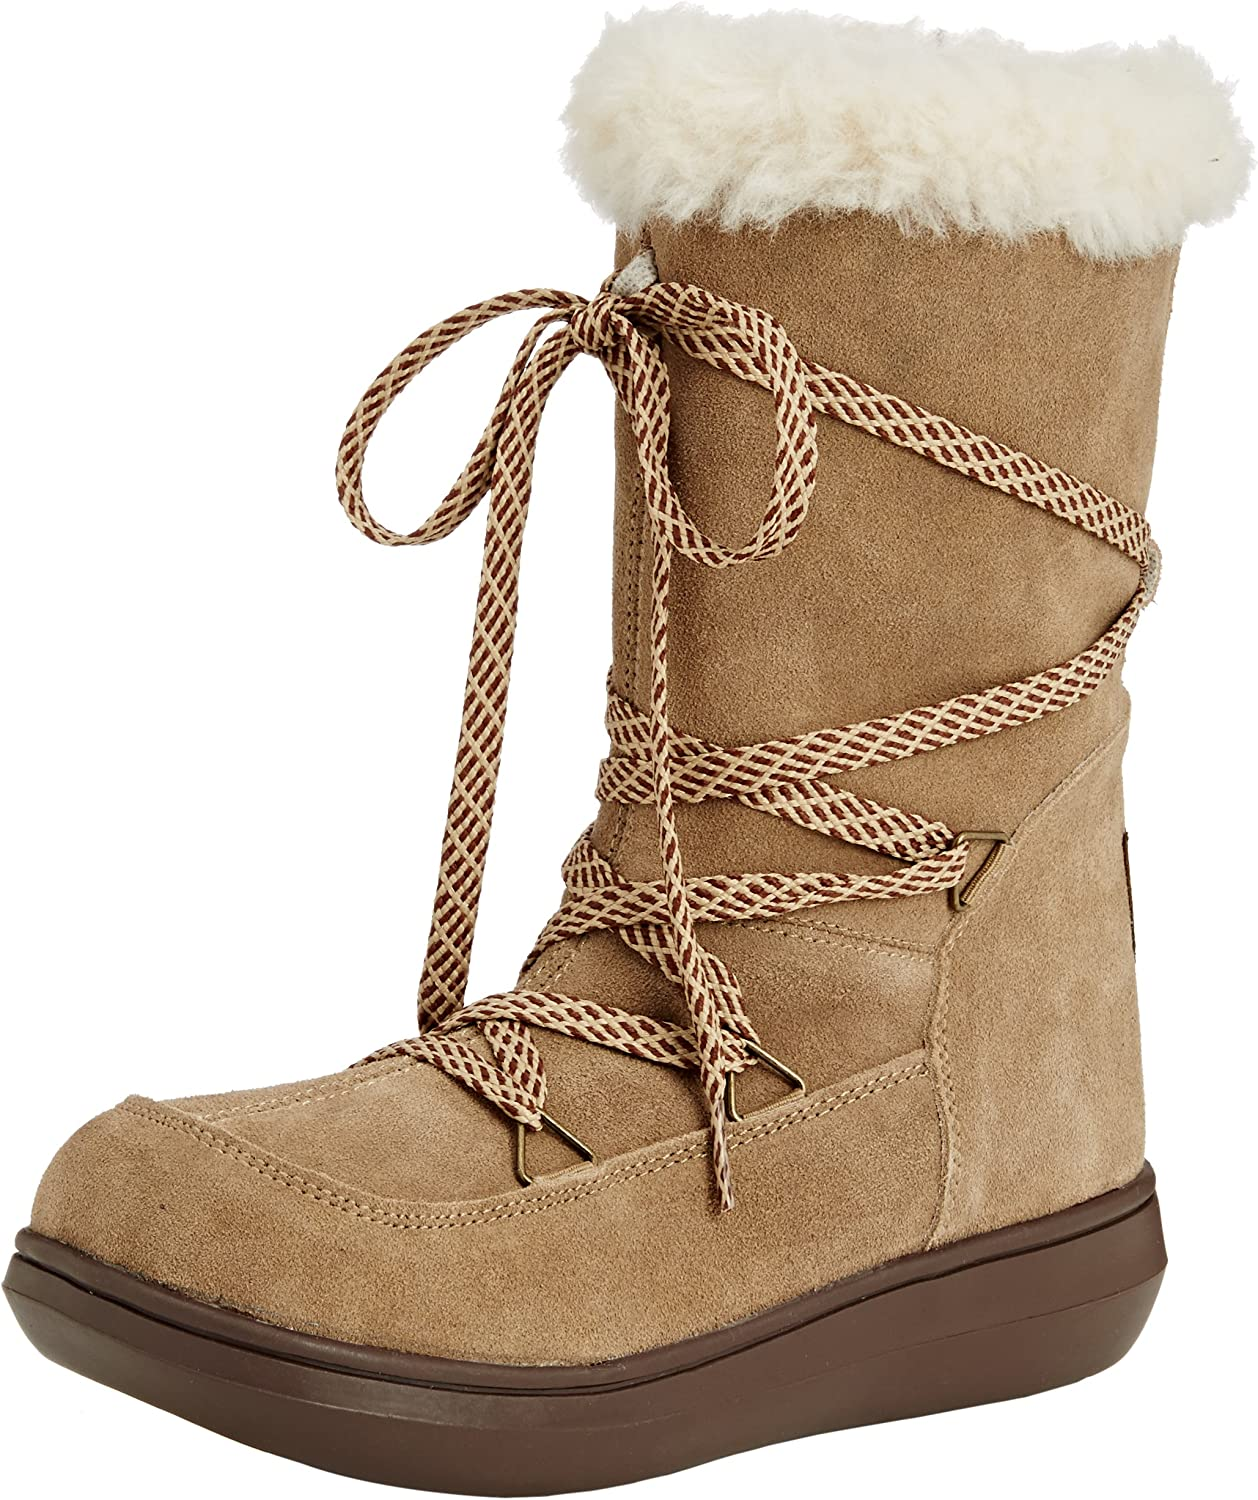 Rocket Dog Snowcrushed Womens Suede Winter Boots